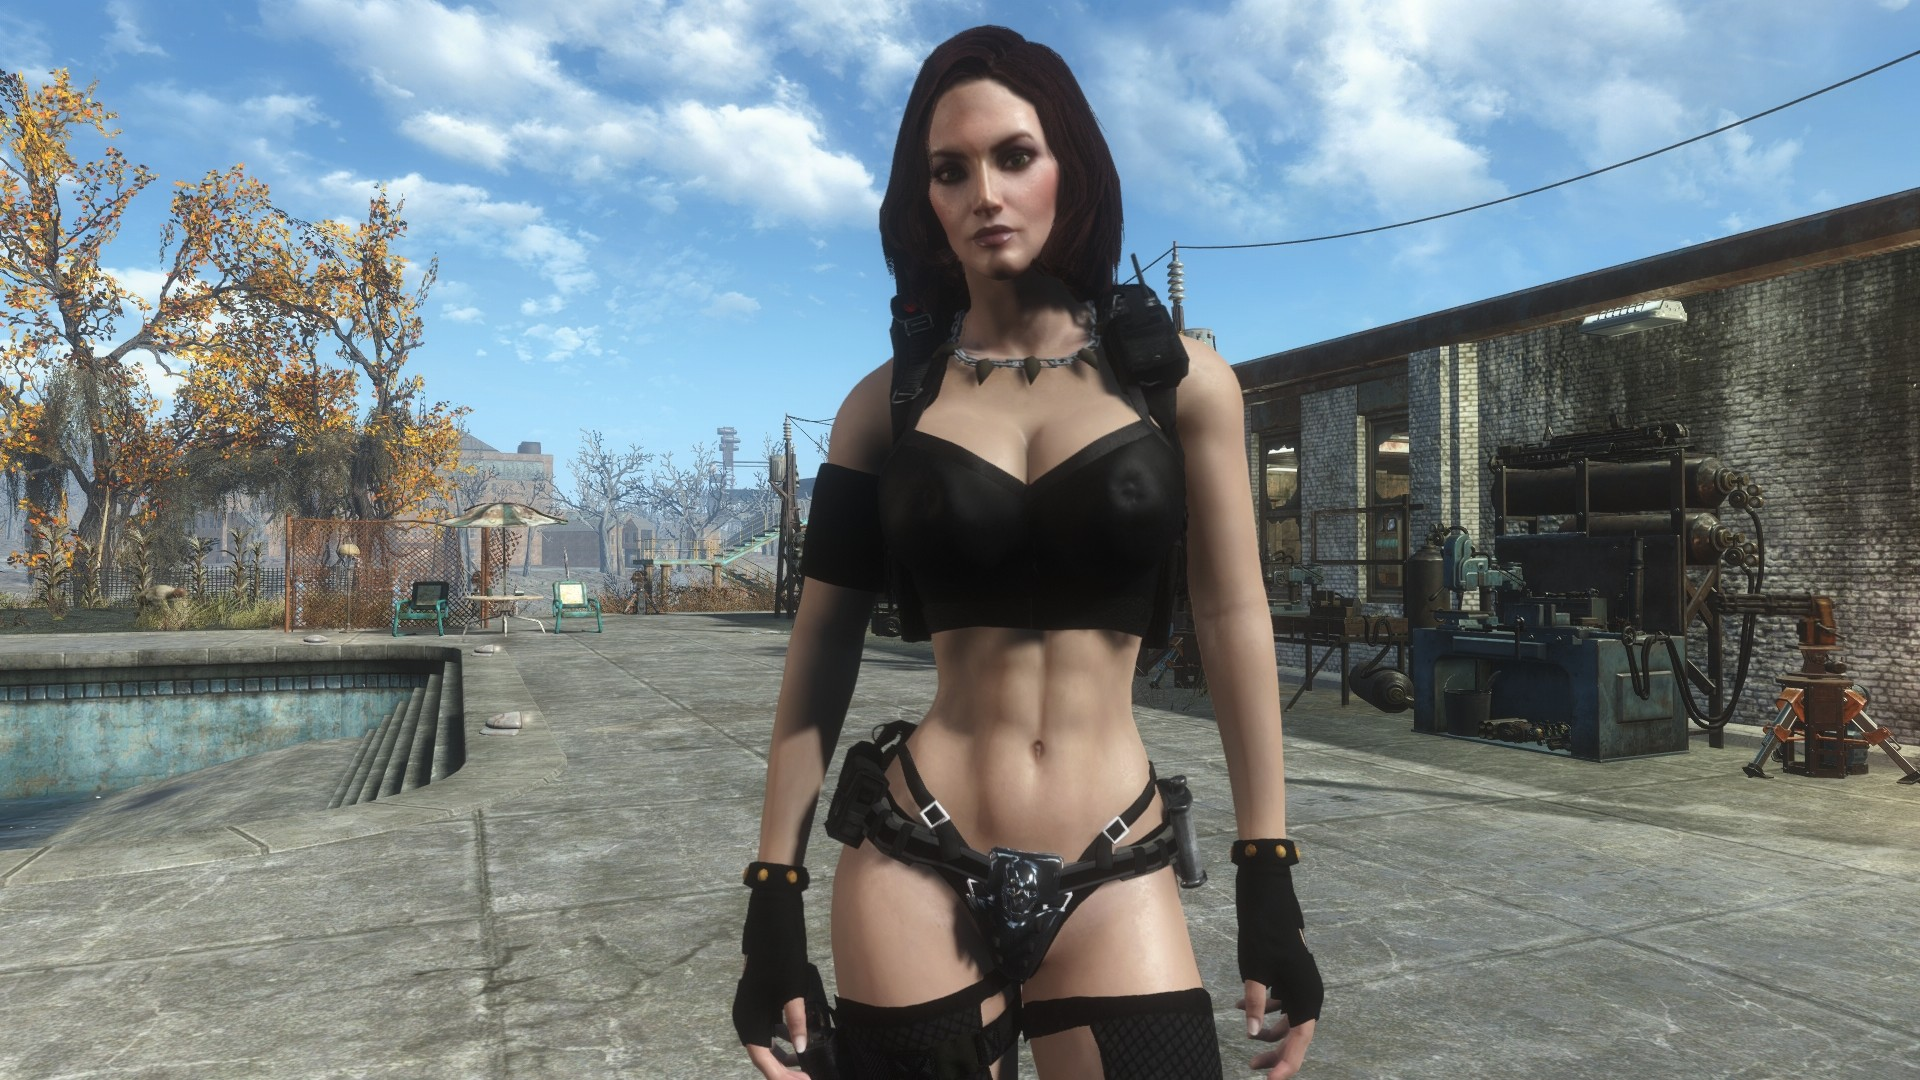 Piper fallout 4 nude mod hentia galleries